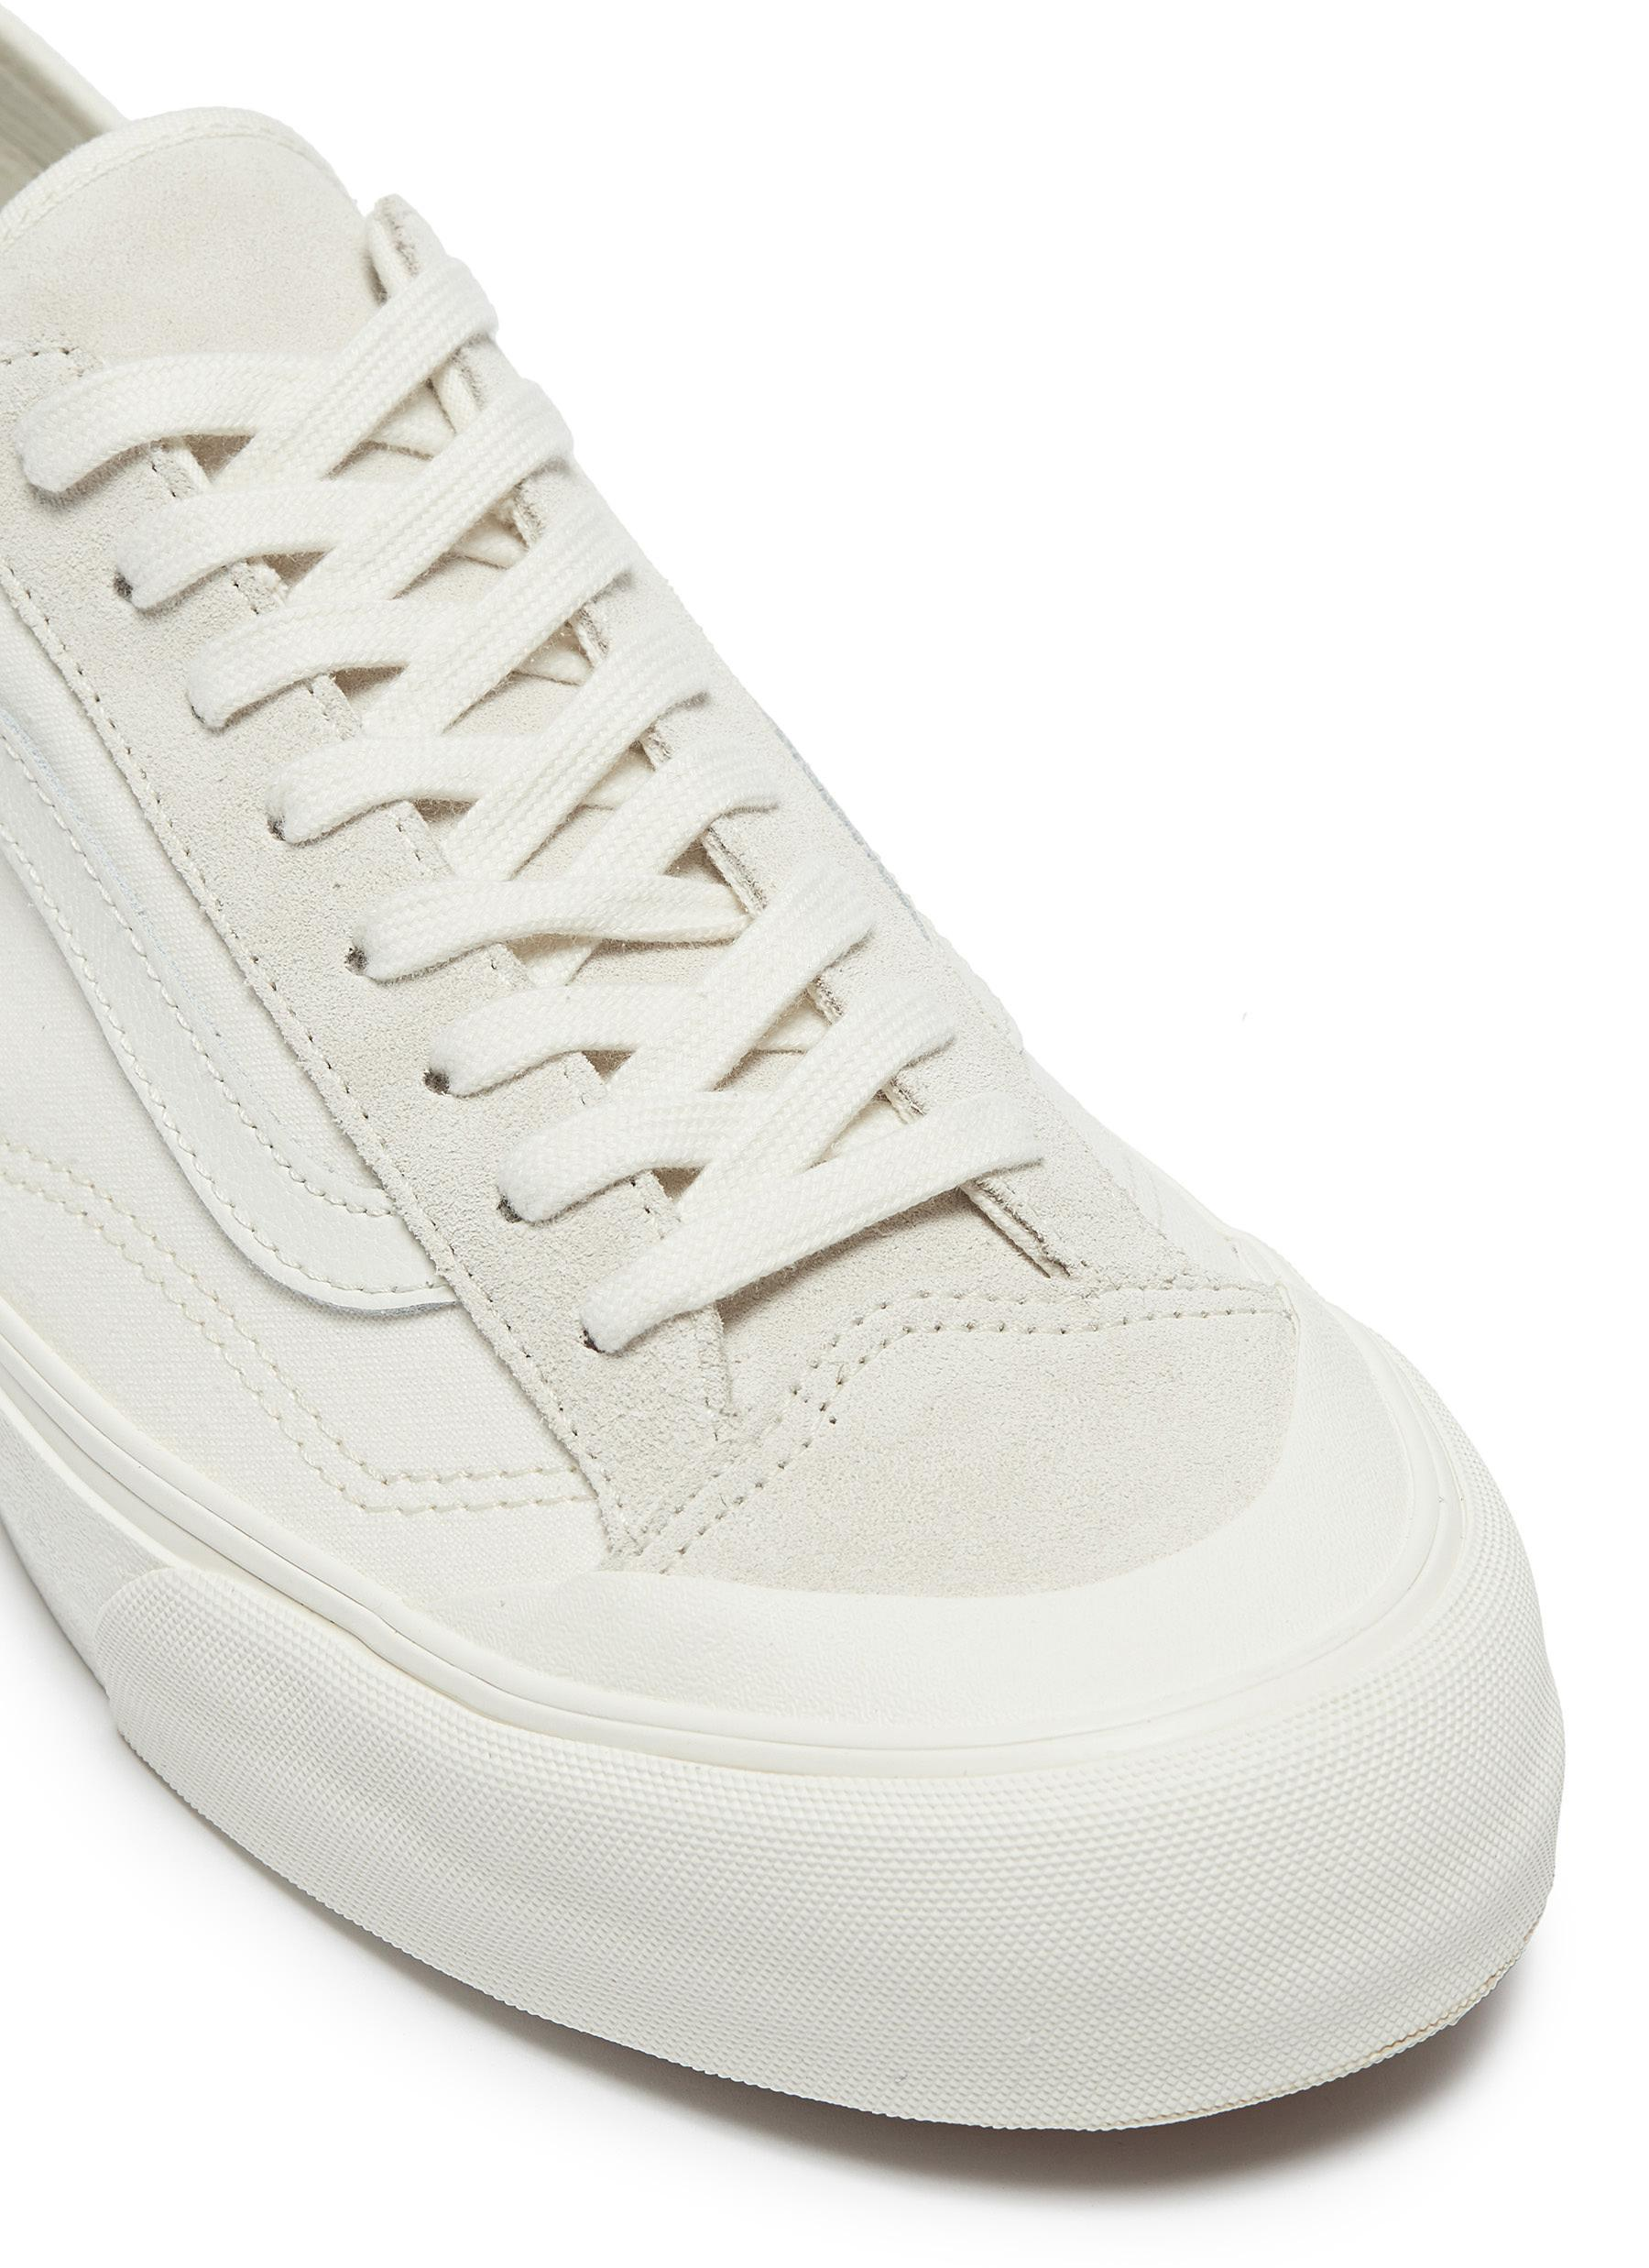 c01125f4e46 Canvas  style White For Lyst Men Vans In 36 Sf  Decon Sneakers X8w7qw5